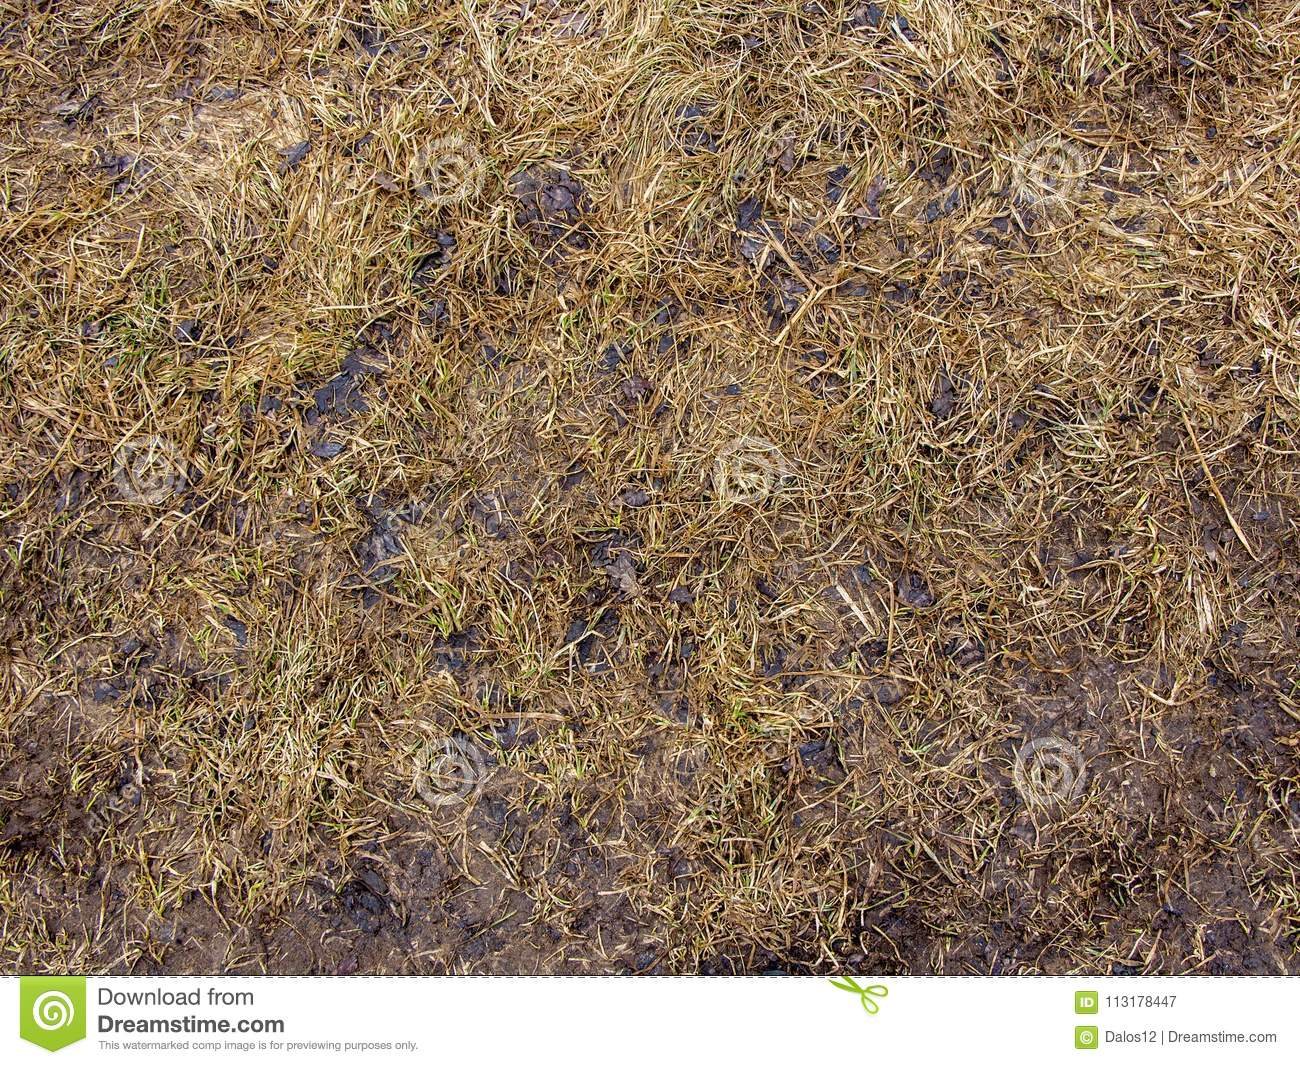 Soil with dried grass background. Seamless Texture of the Ground with Dry Herbs.